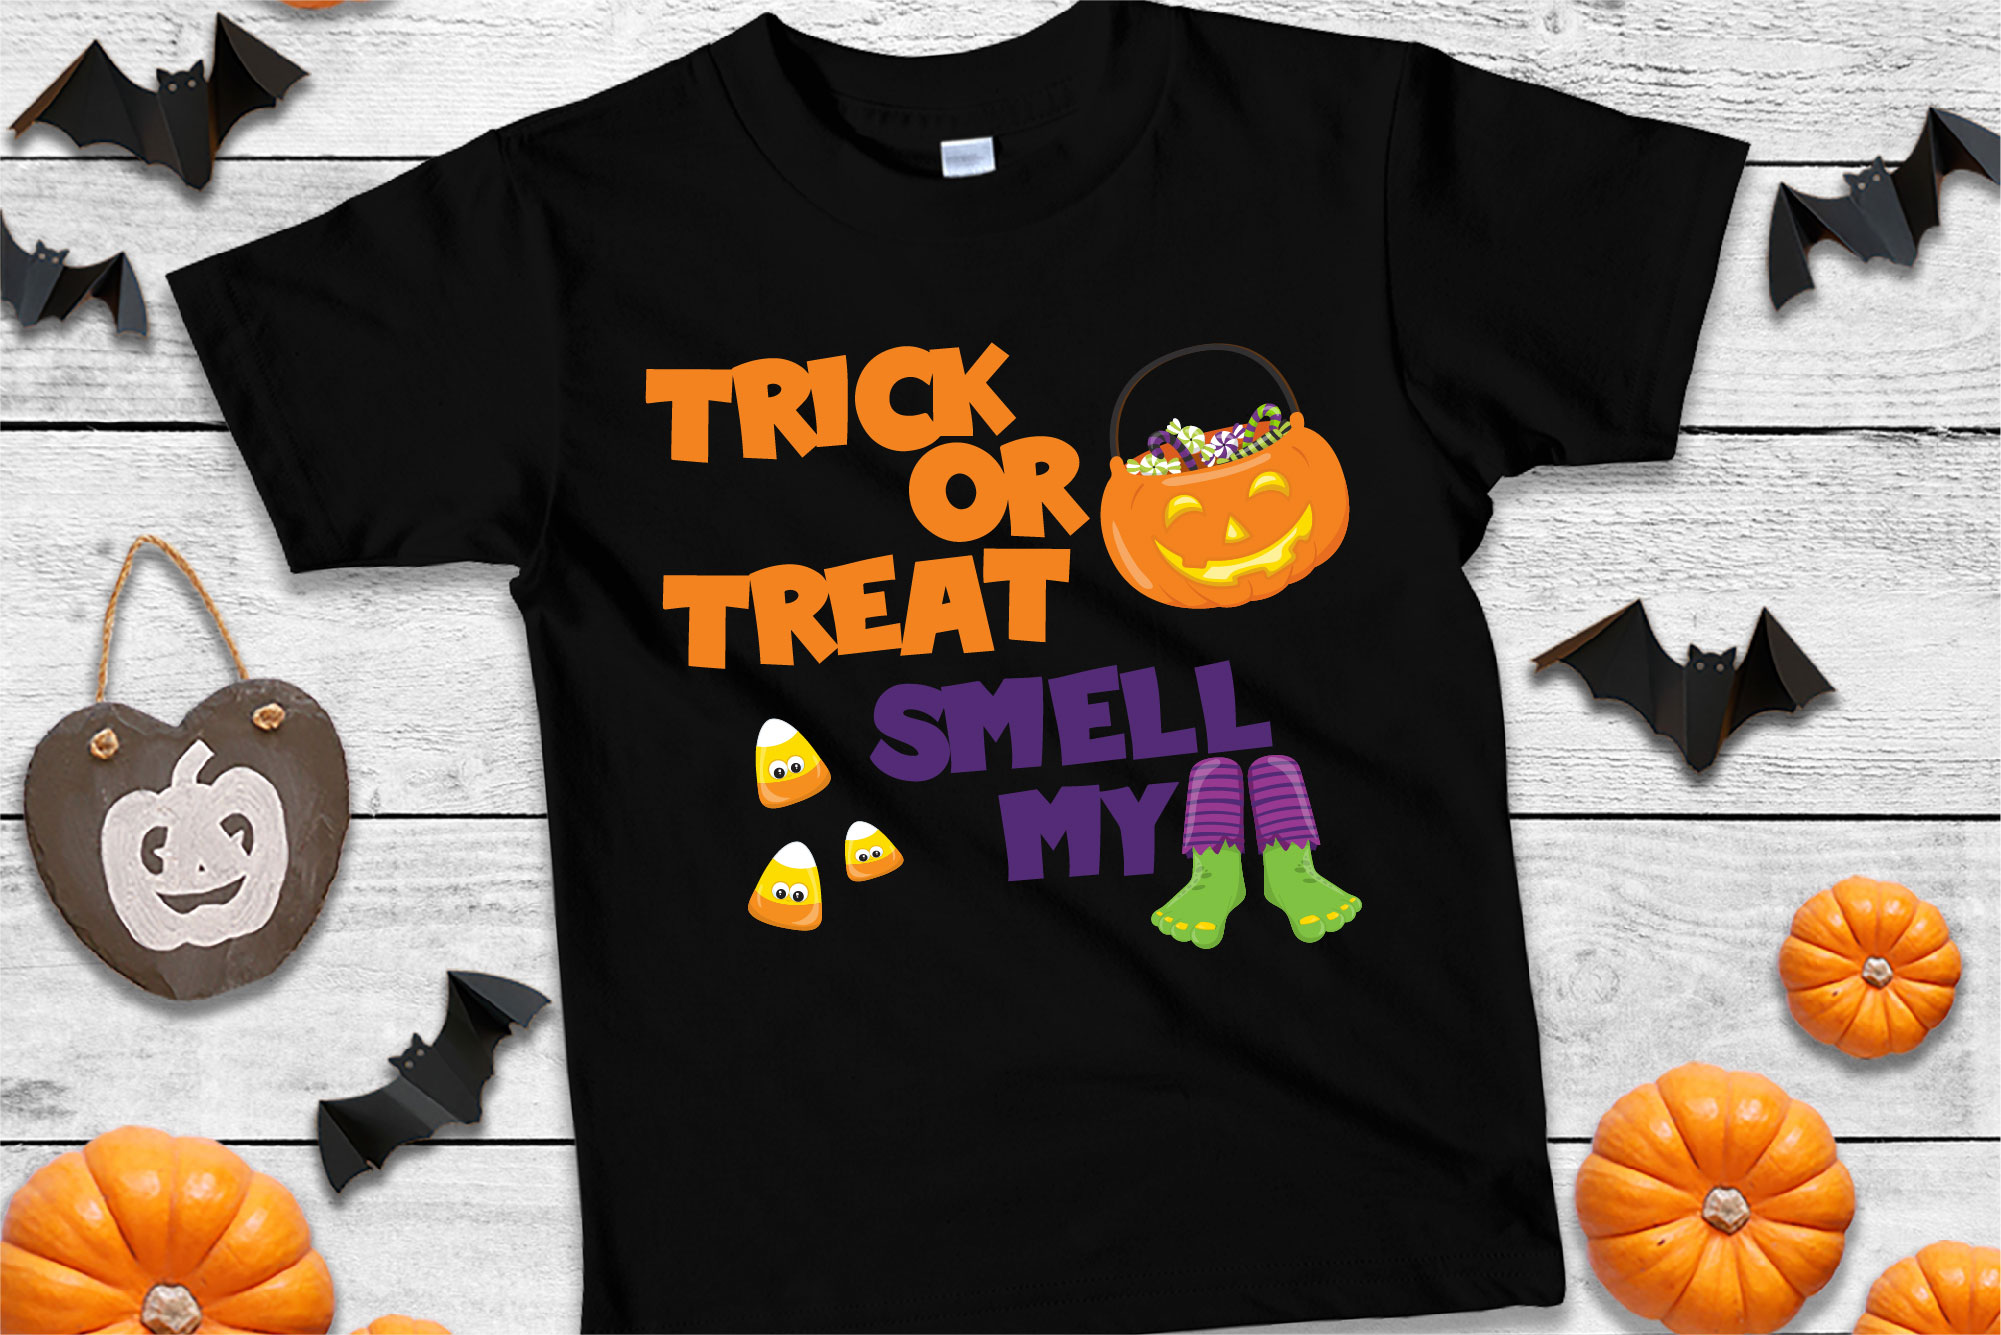 Trick Or Treat Smell My Feet SVG Sublimation, Halloween SVG example image 1